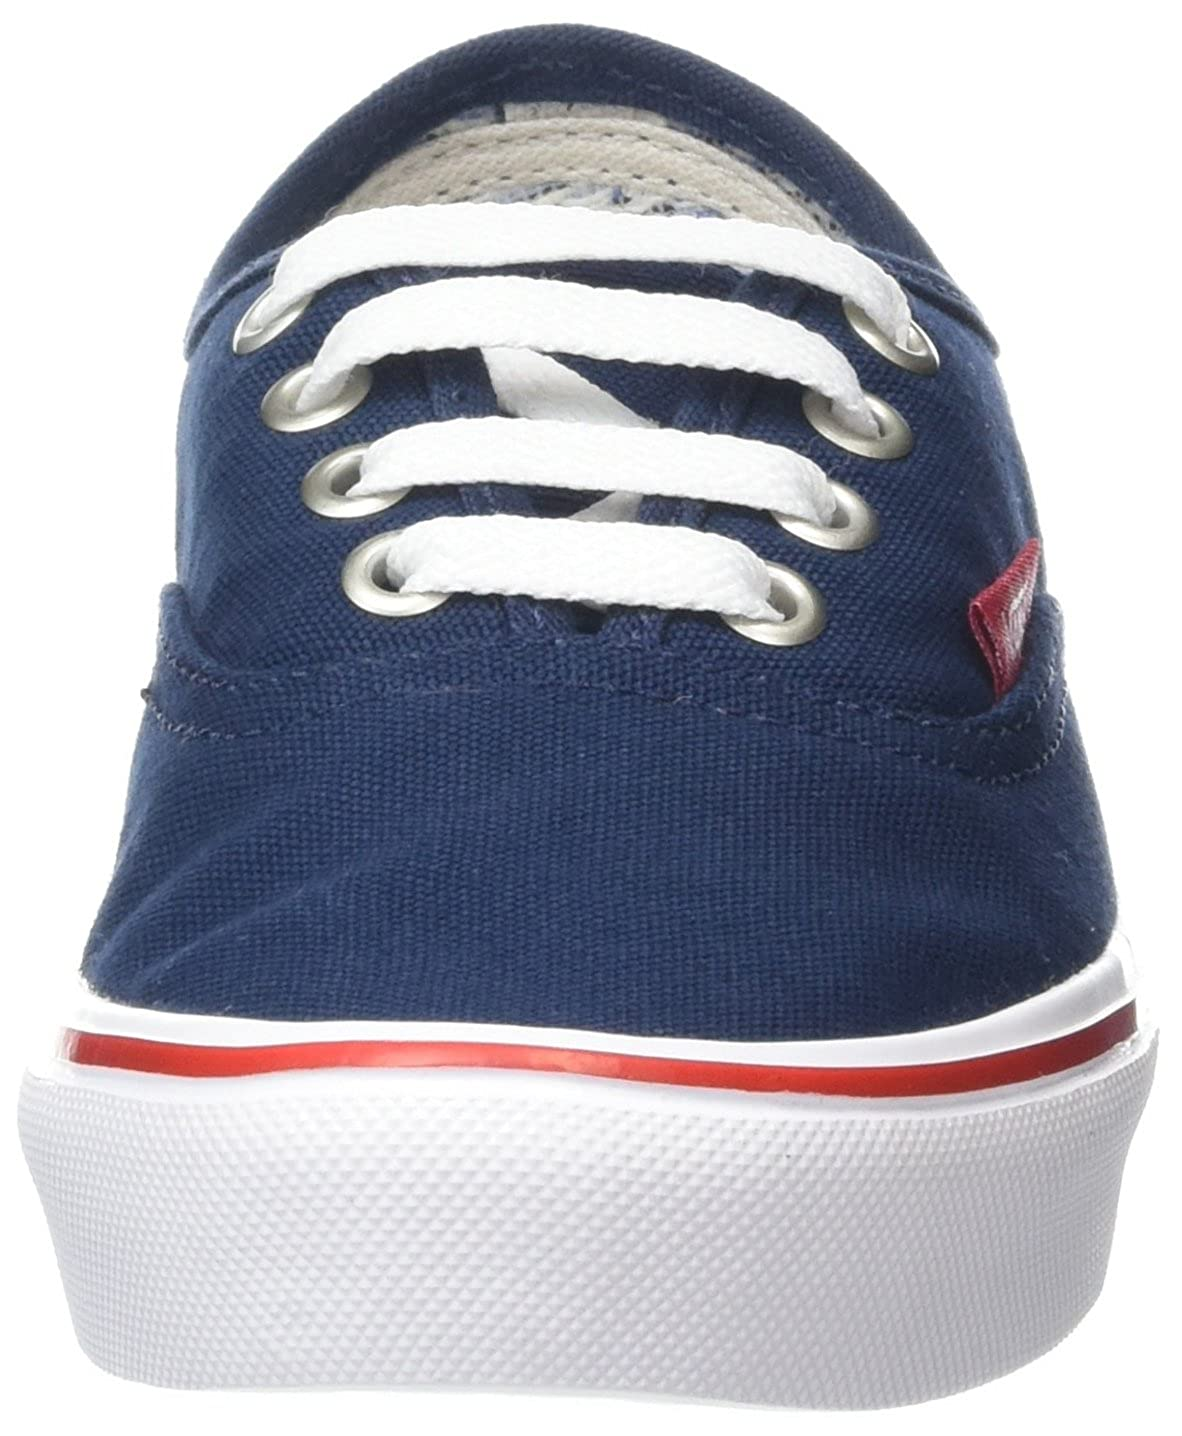 Vans Unisex-Erwachsene Ua Authentic Authentic Authentic Lite Turnschuhe 2f58de